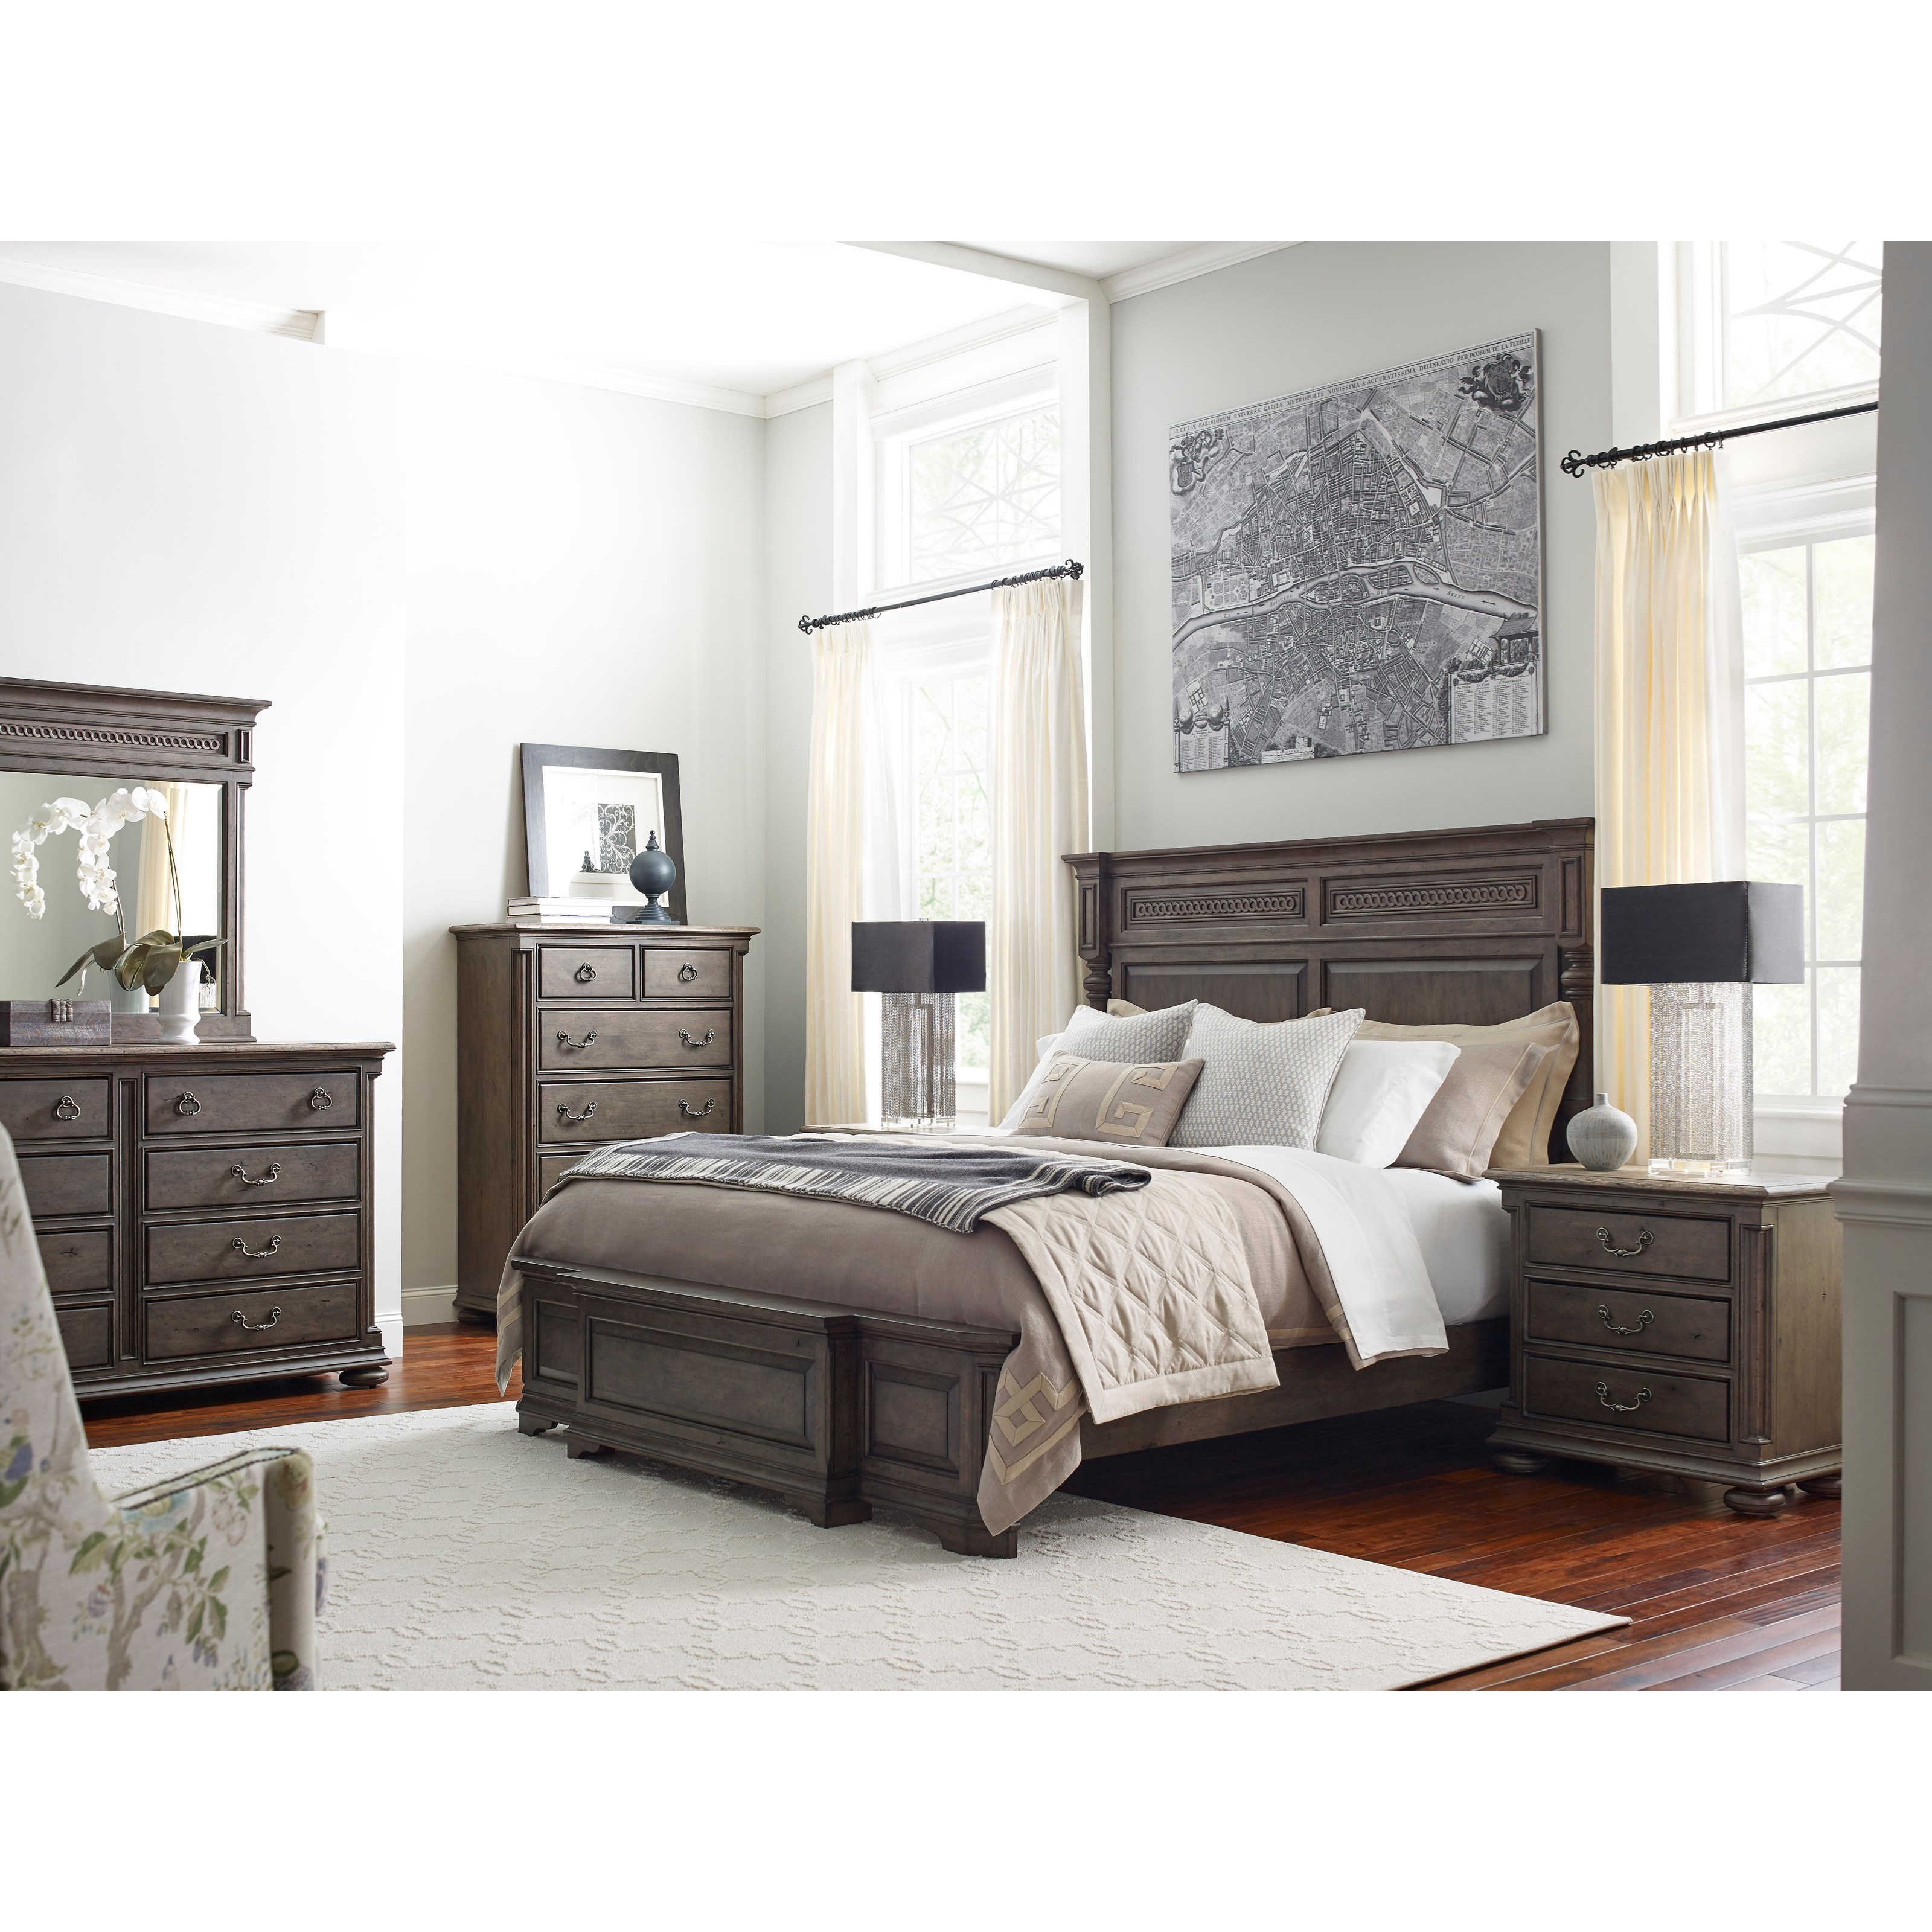 Greyson Queen Bedroom Group by Kincaid Furniture at Northeast Factory Direct